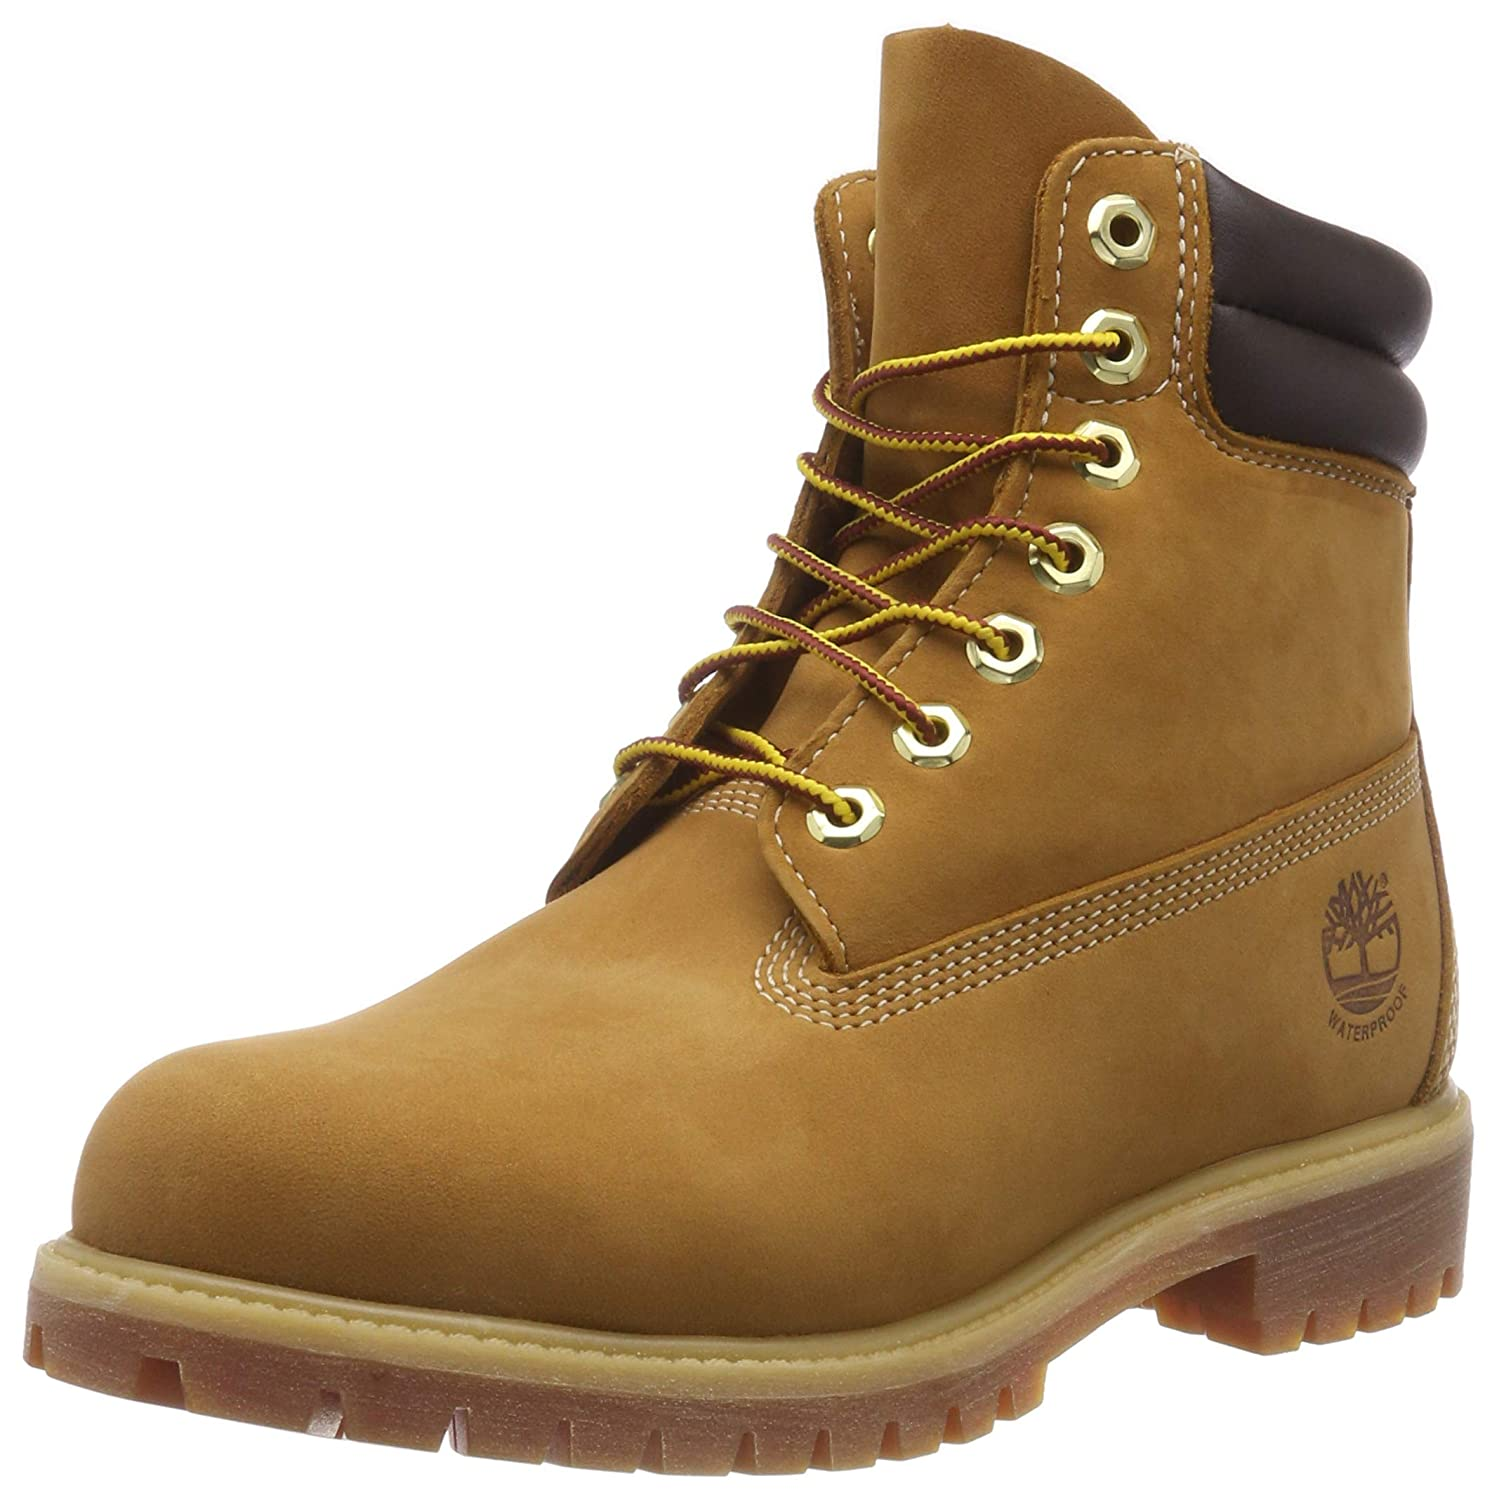 Timberland 6 inch Double Collar Waterproof, Stivali Uomo